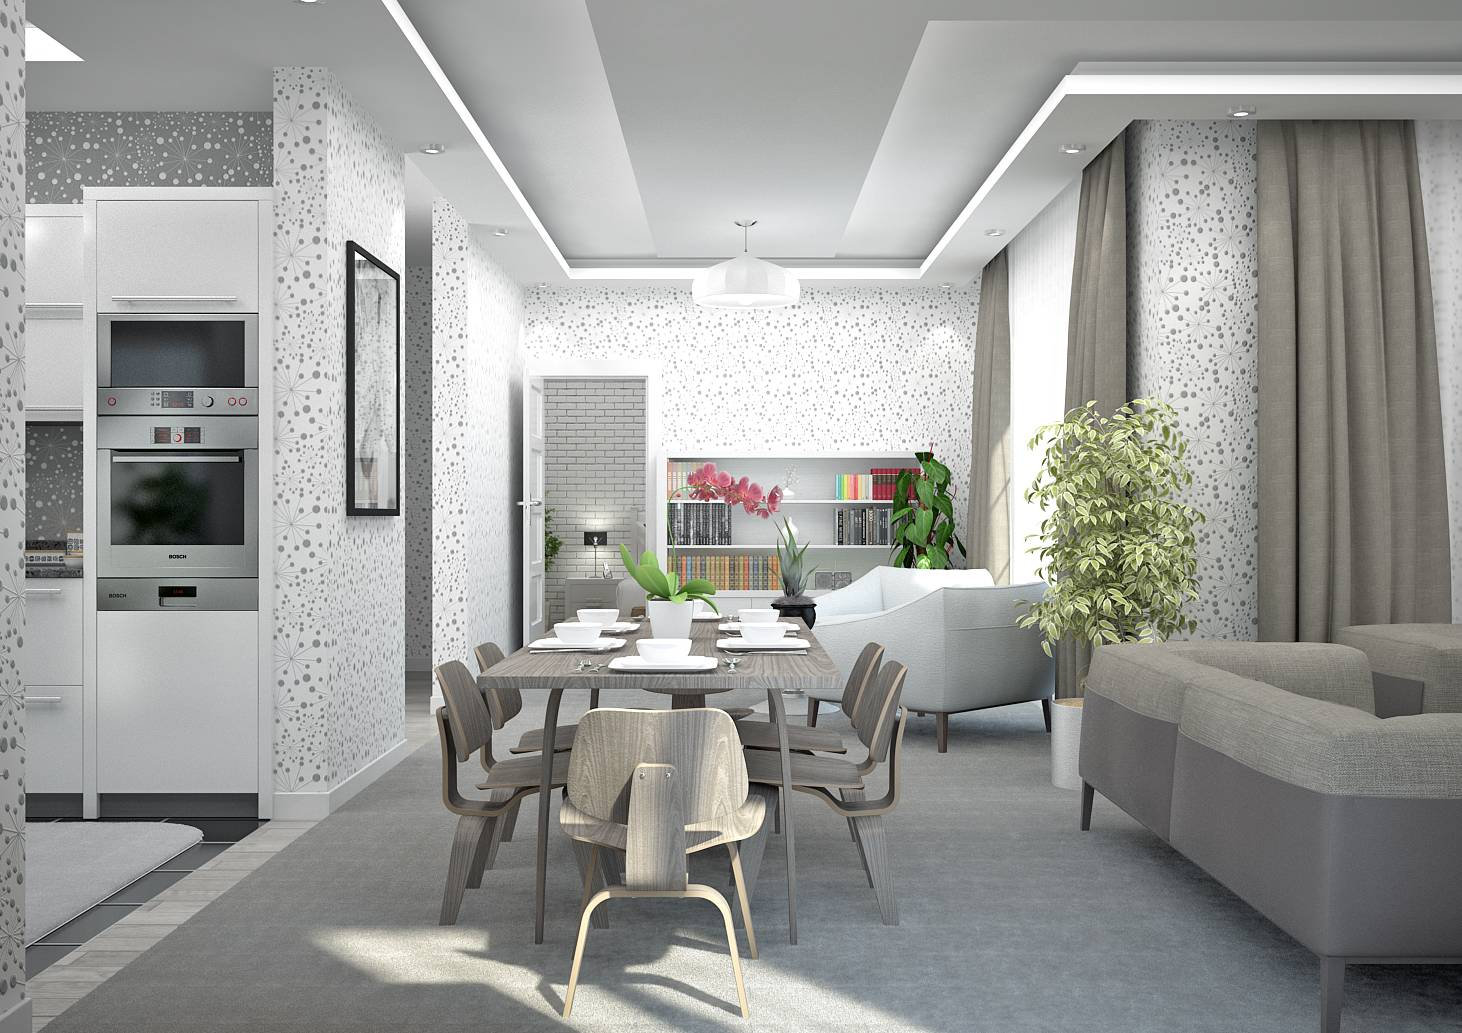 Amenagement salon sejour cuisine 40m2 id e for Amenagement separation cuisine salle a manger